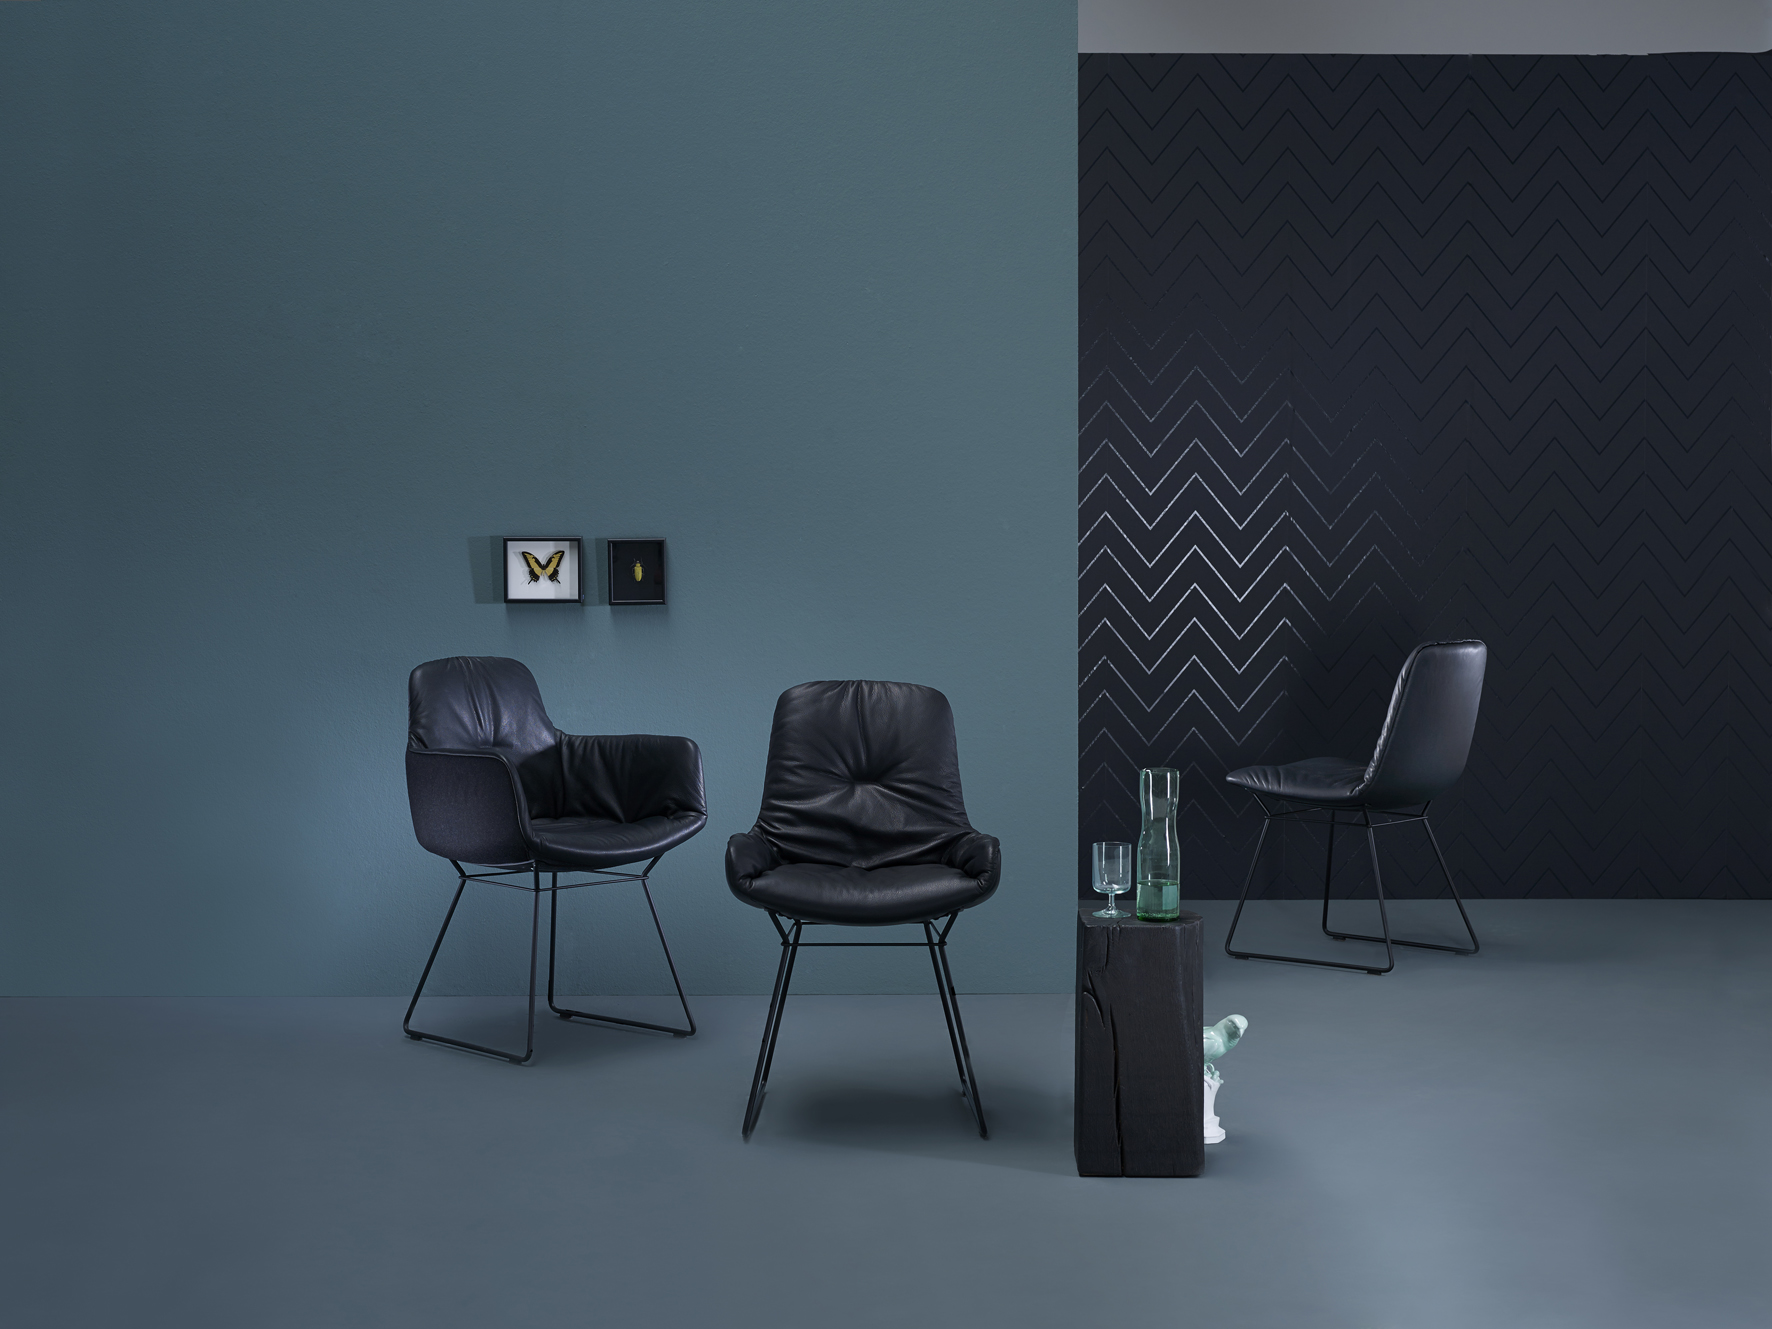 freifrau designstudio k m belentw rfe ladenbau badm bel und accessoires. Black Bedroom Furniture Sets. Home Design Ideas